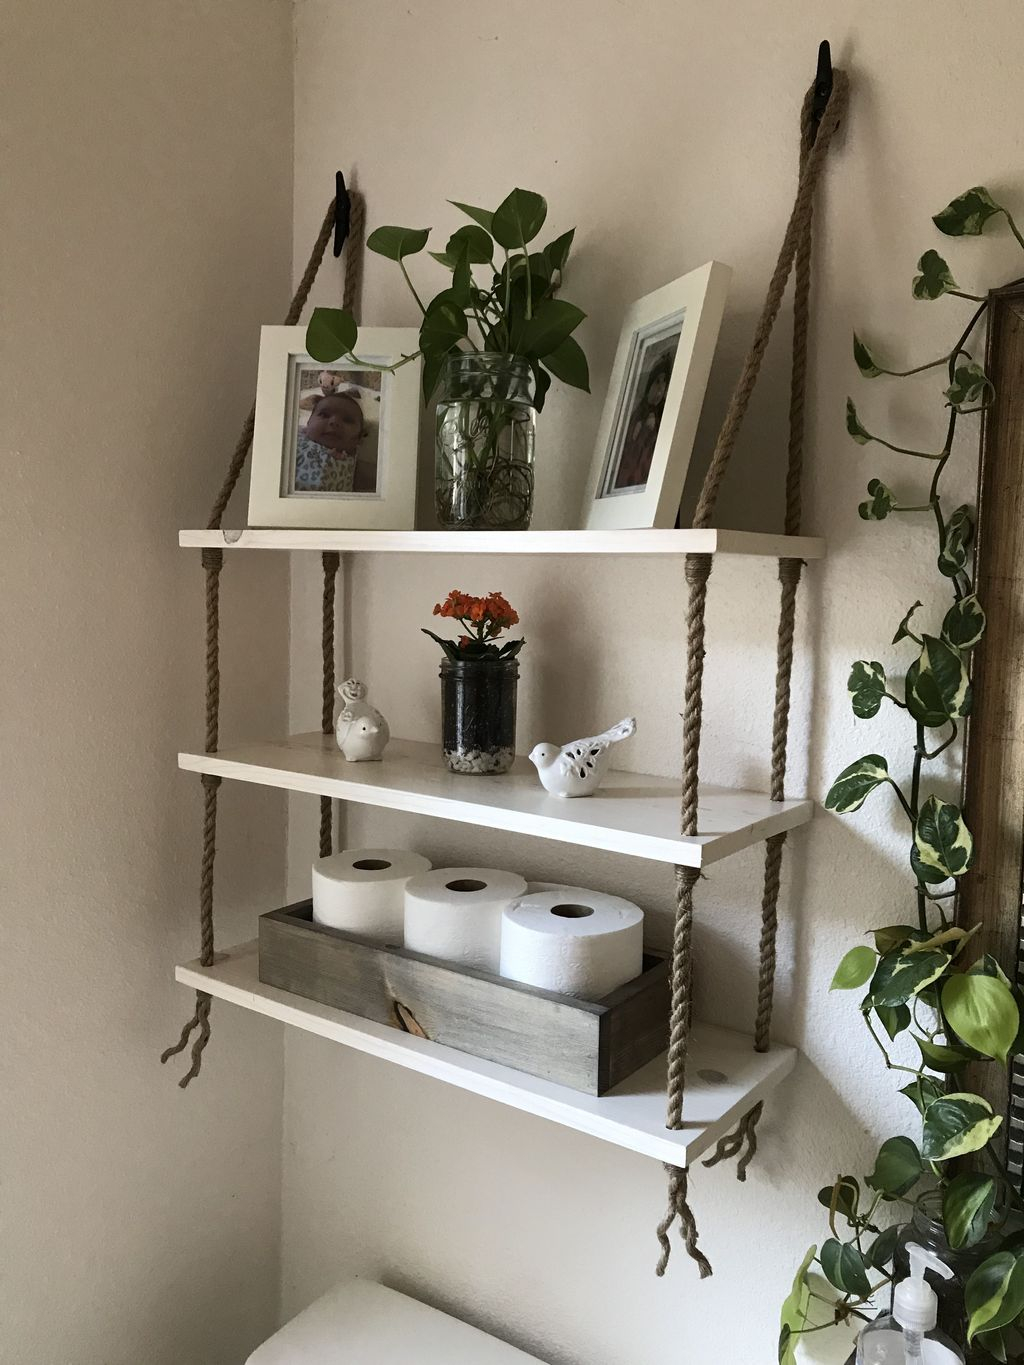 Genius Space Saving Hacks For Your Tiny House 31